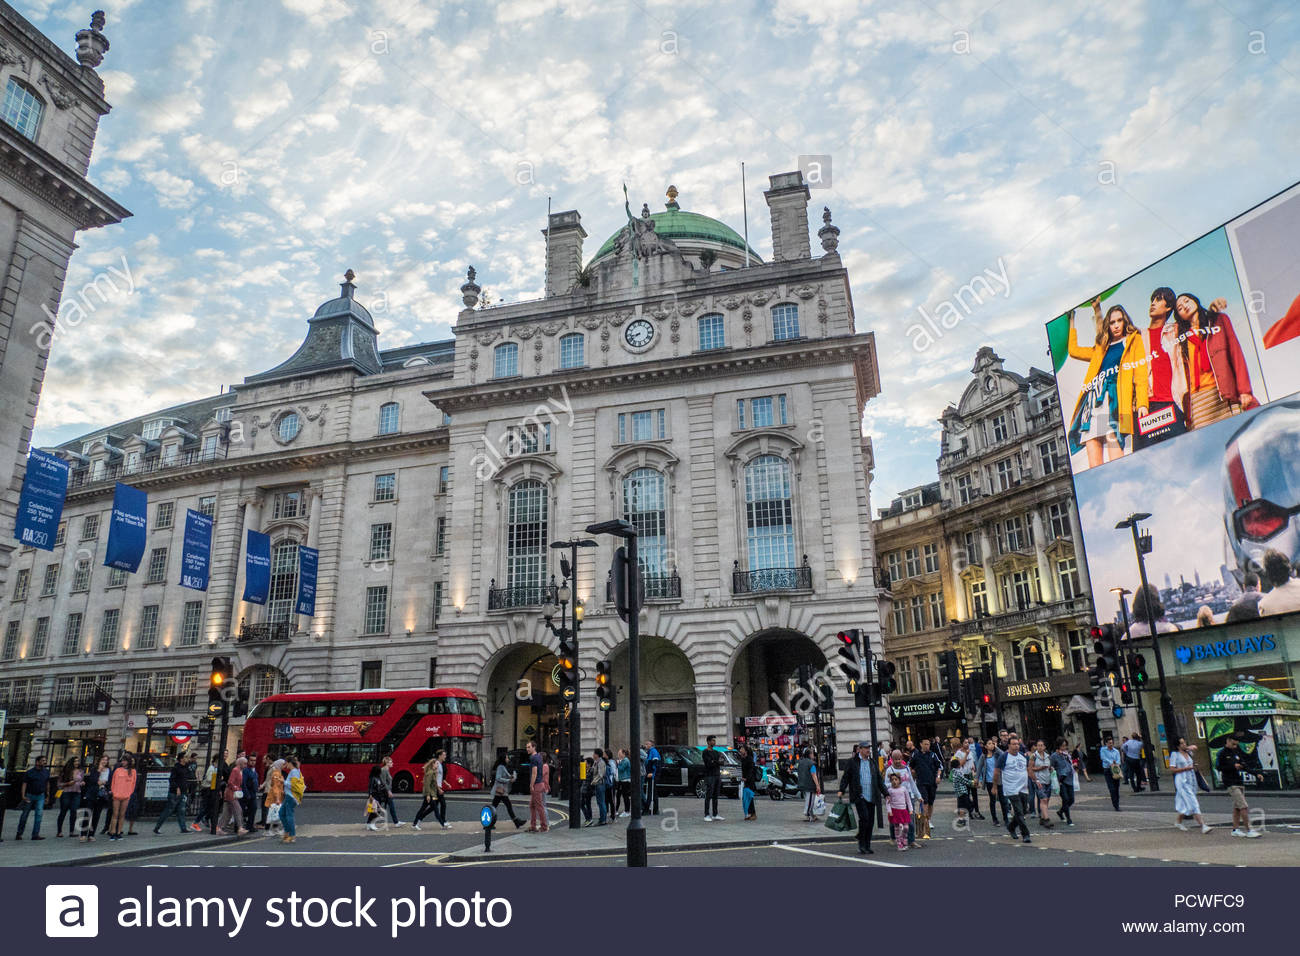 Piccadilly Circus, famous for its Stock Photo